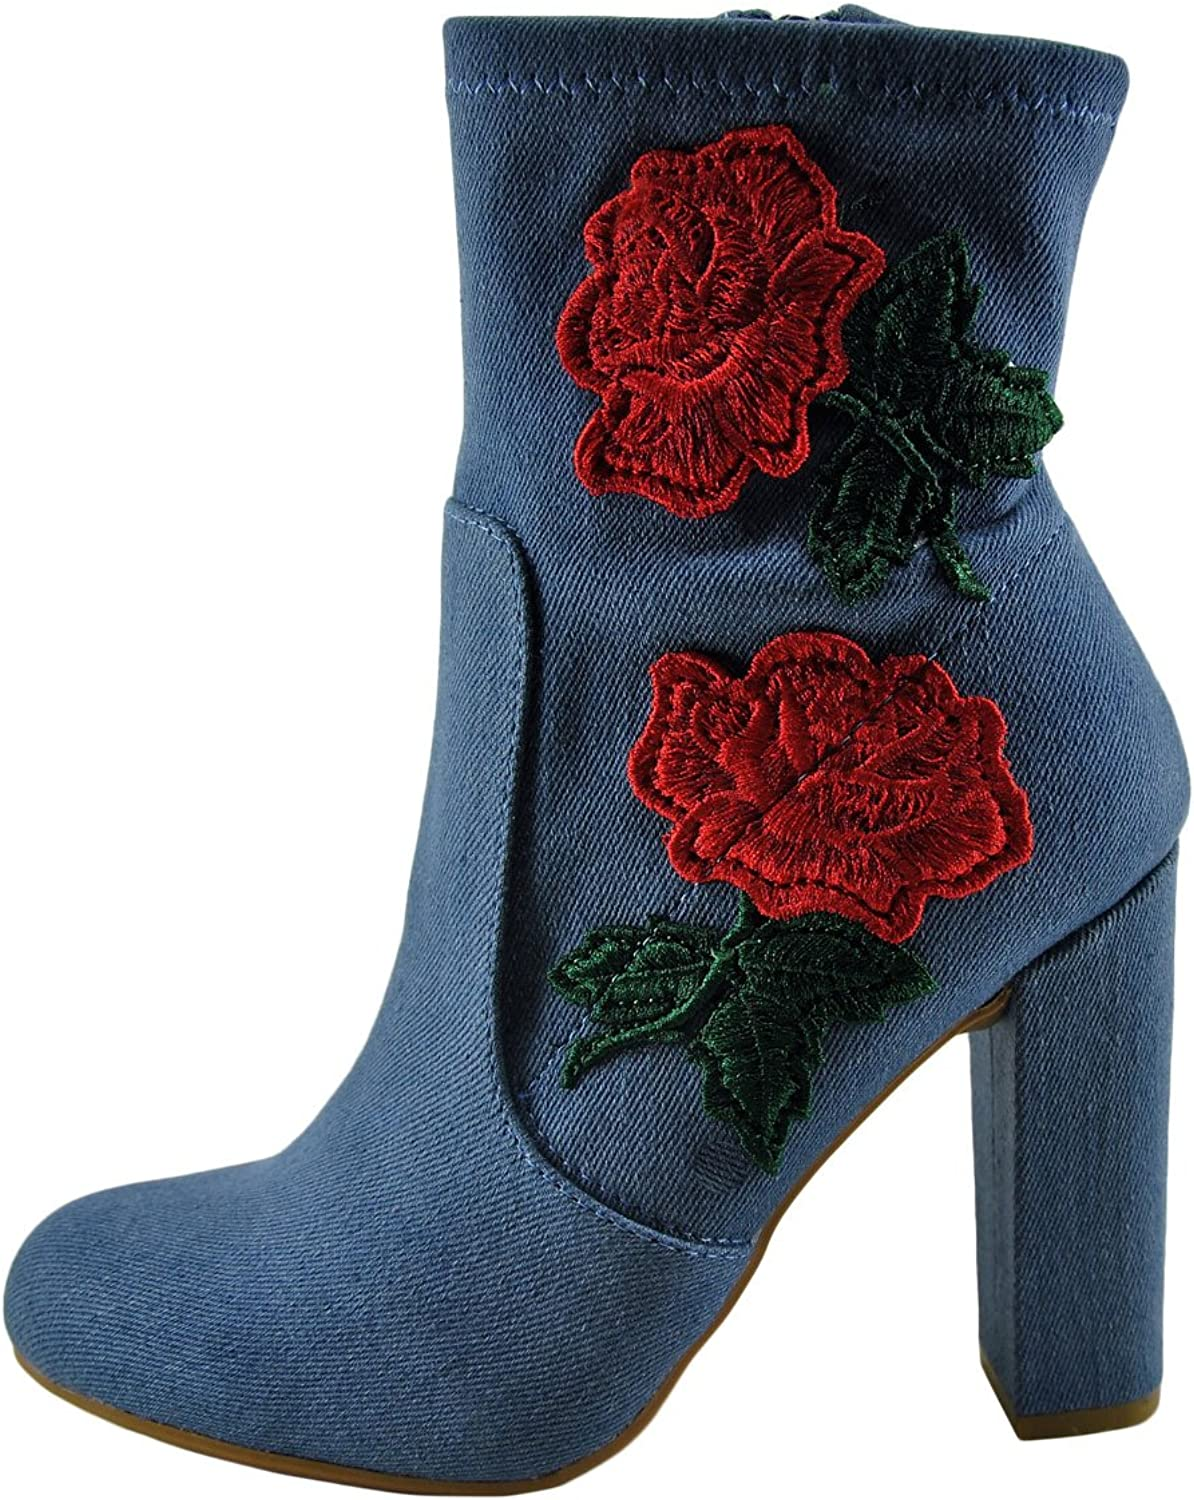 Bamboo Living-21S Women's Floral Embroidered Boot